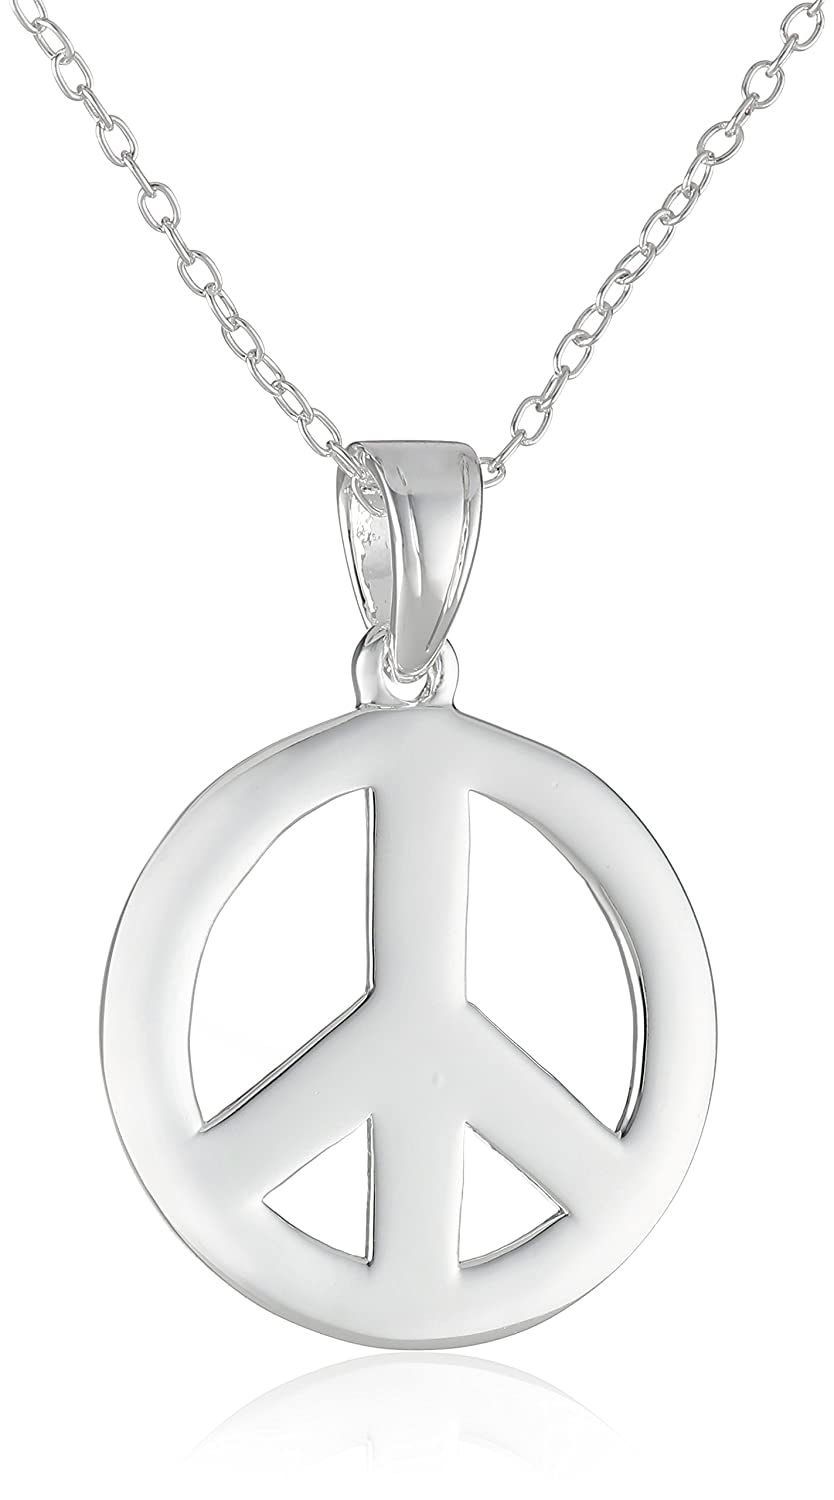 Amazon sterling silver peace sign pendant necklace peace amazon sterling silver peace sign pendant necklace peace sign in jewelry jewelry mozeypictures Choice Image